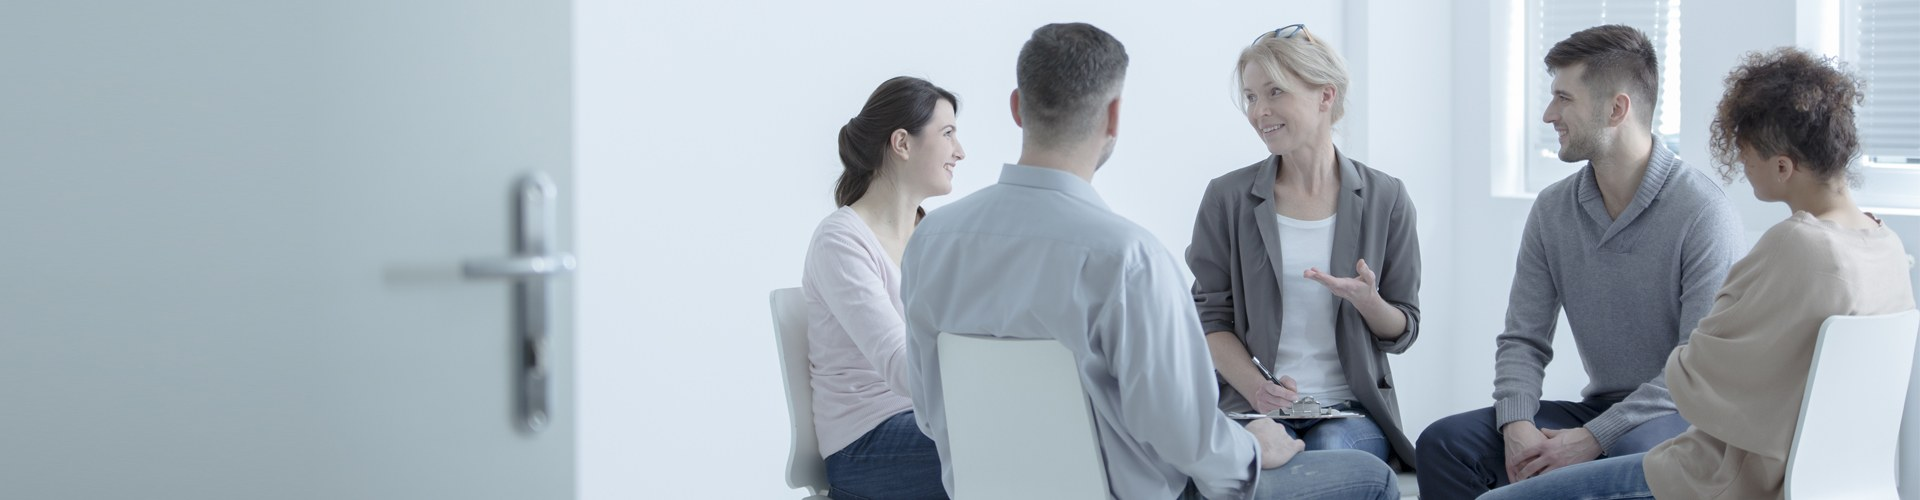 Close-up of psychotherapist listening to patient with anxiety disorder during group session